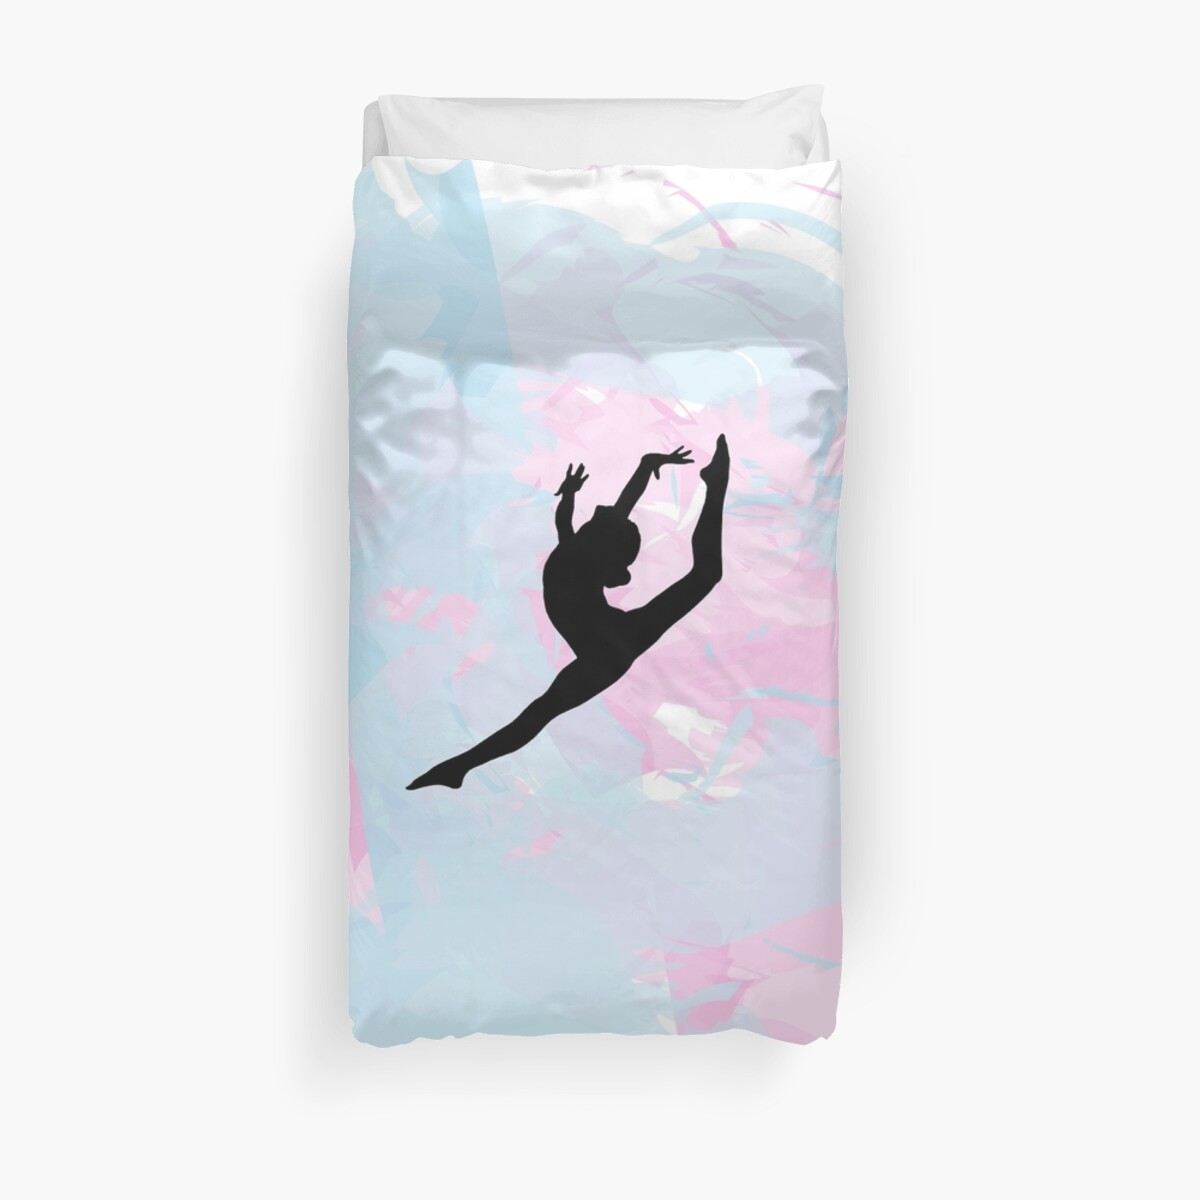 Water Colour Gymnastics Silhouette  by Flexiblepeople